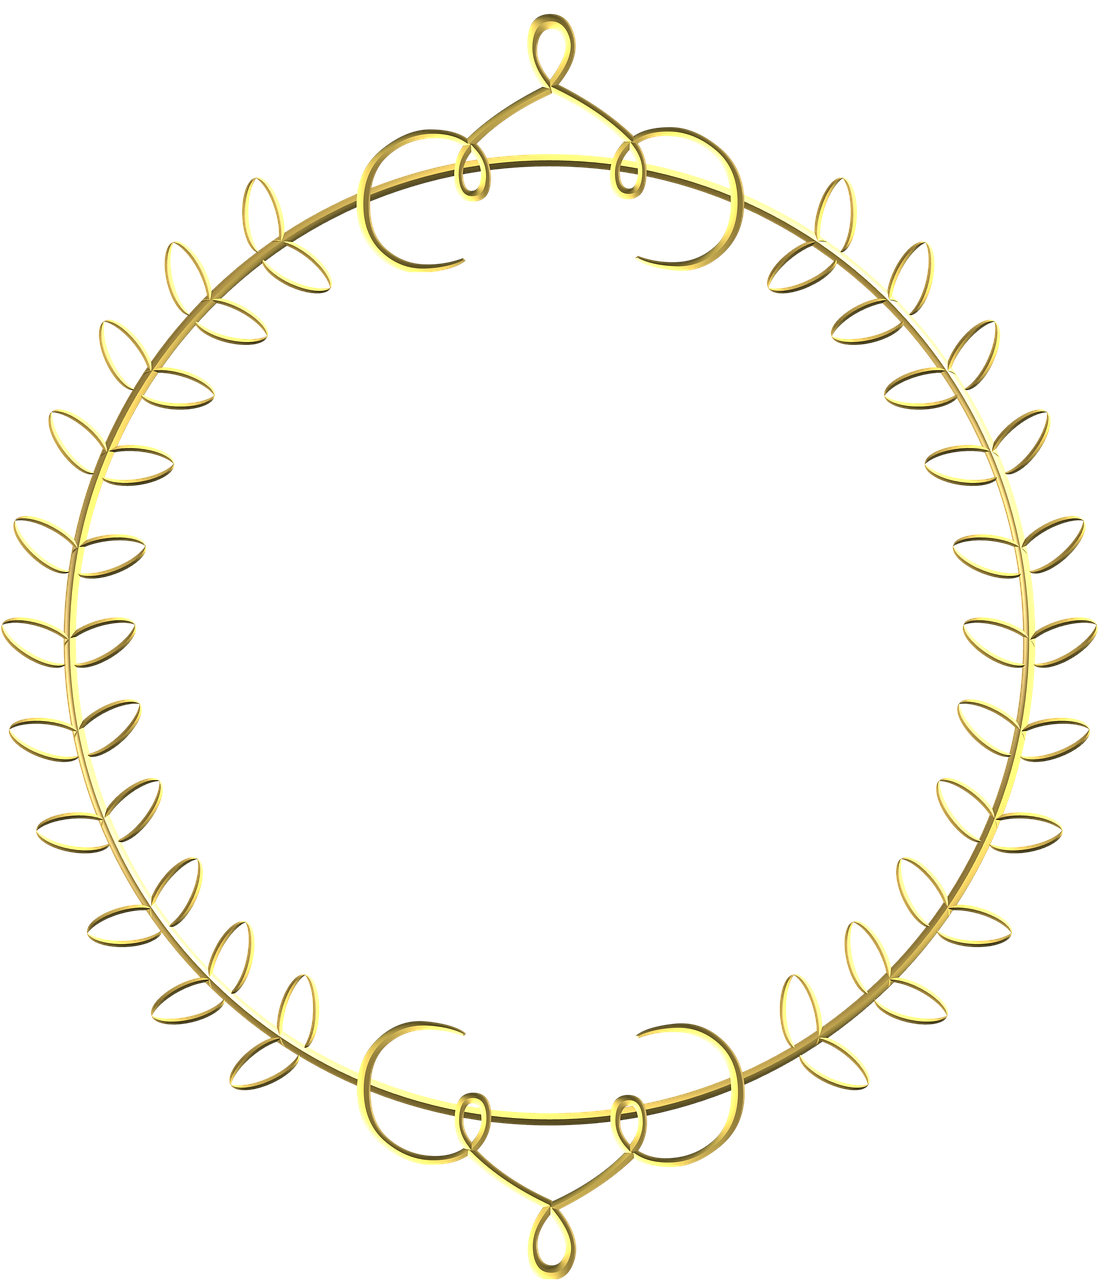 gold frame circle border decoration free photo from